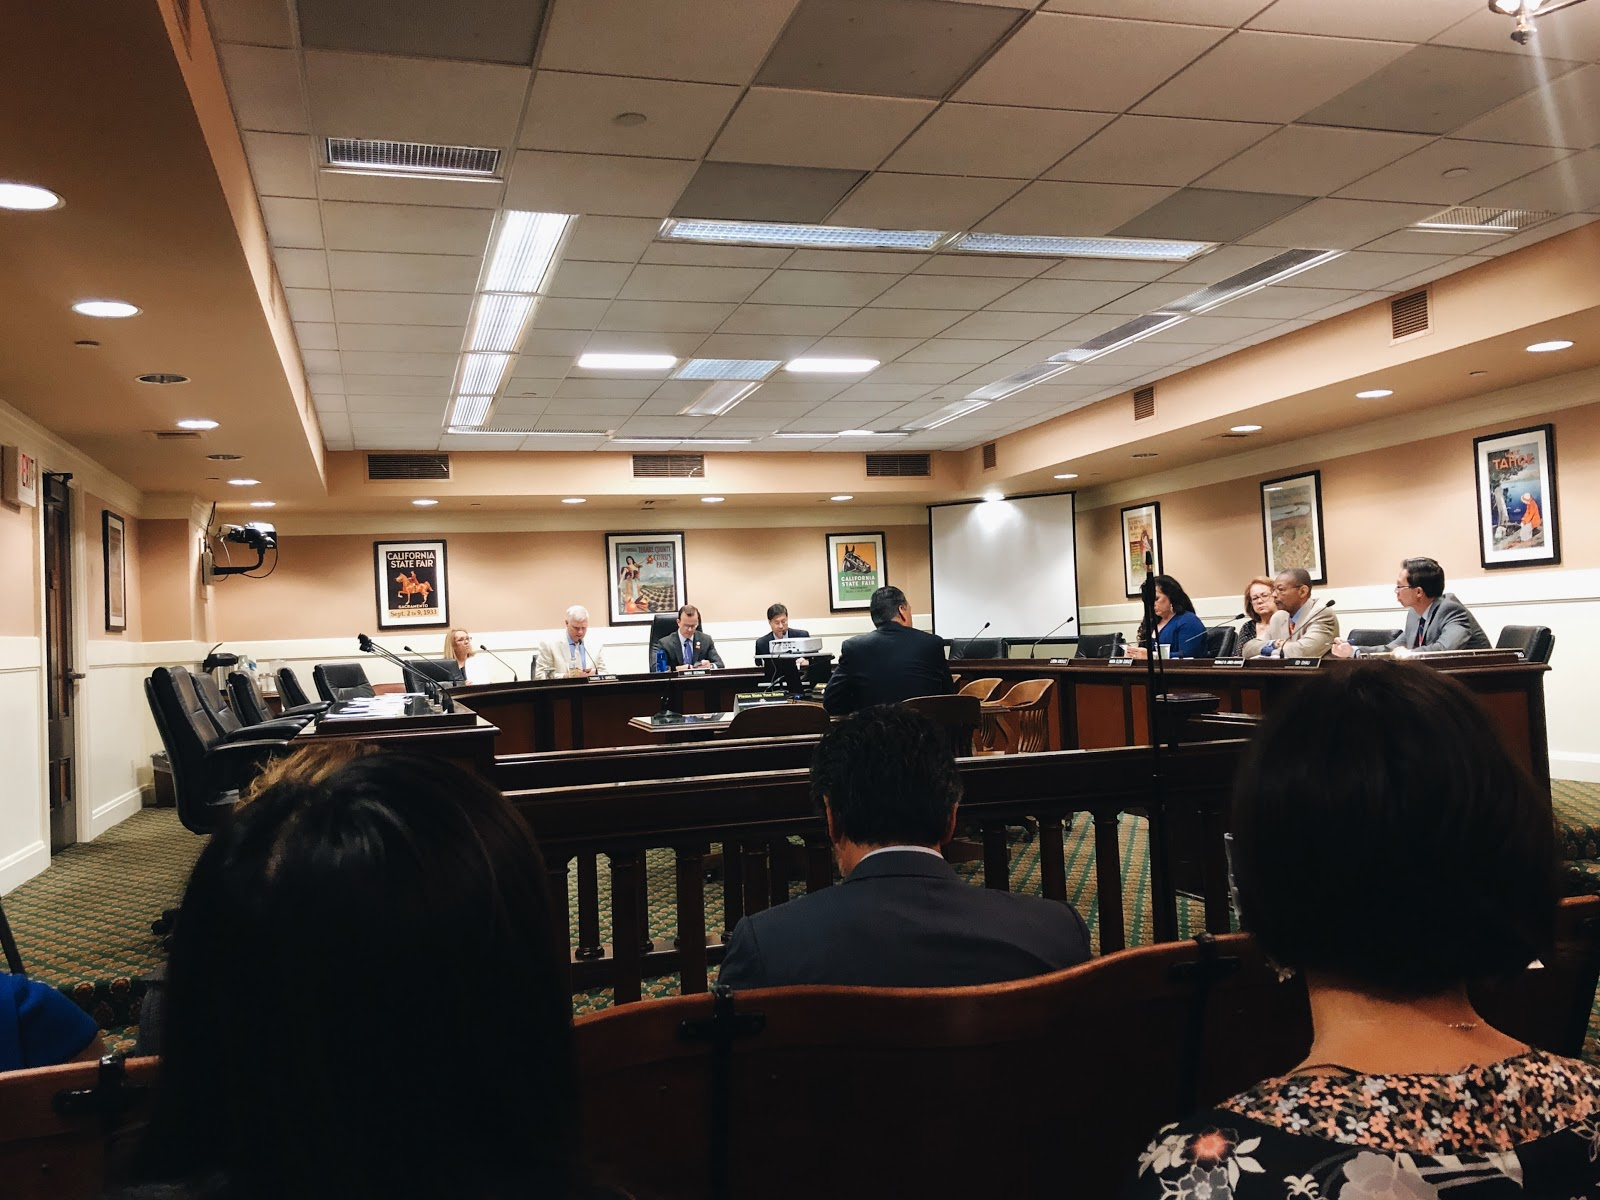 Image of joint committee hearing on the census with secretary of state, Alex Padilla in the center.